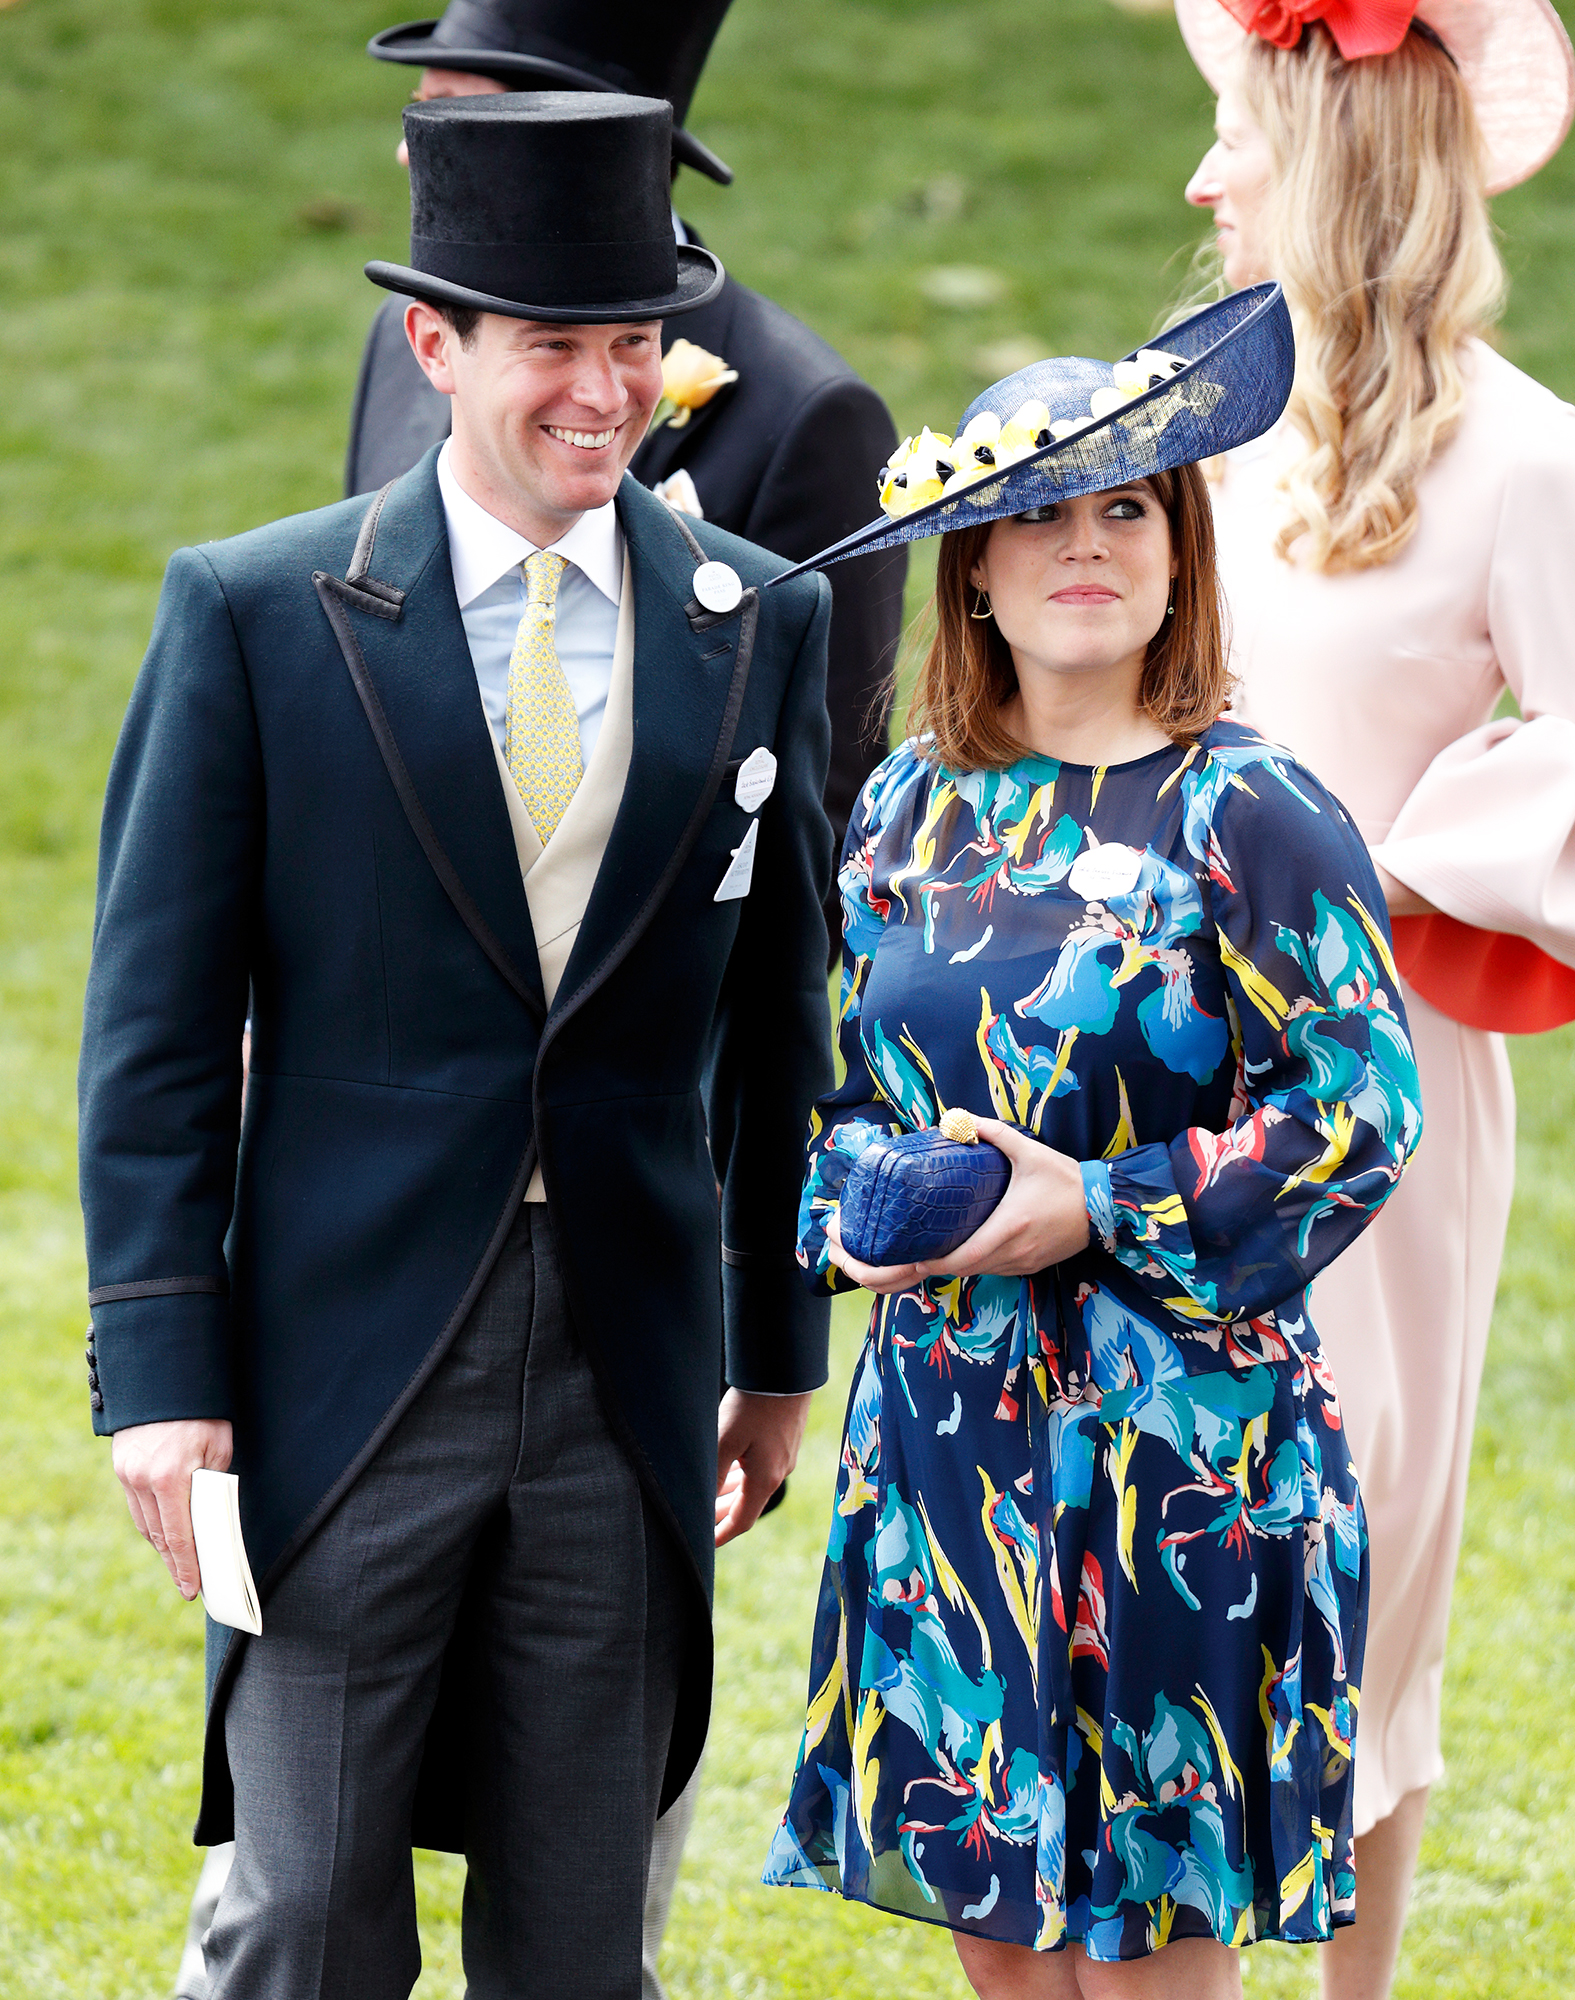 Princess Eugenie and  Jack Brooksbank. Princess is wearing a blue dress and Jack is wearing a suit.